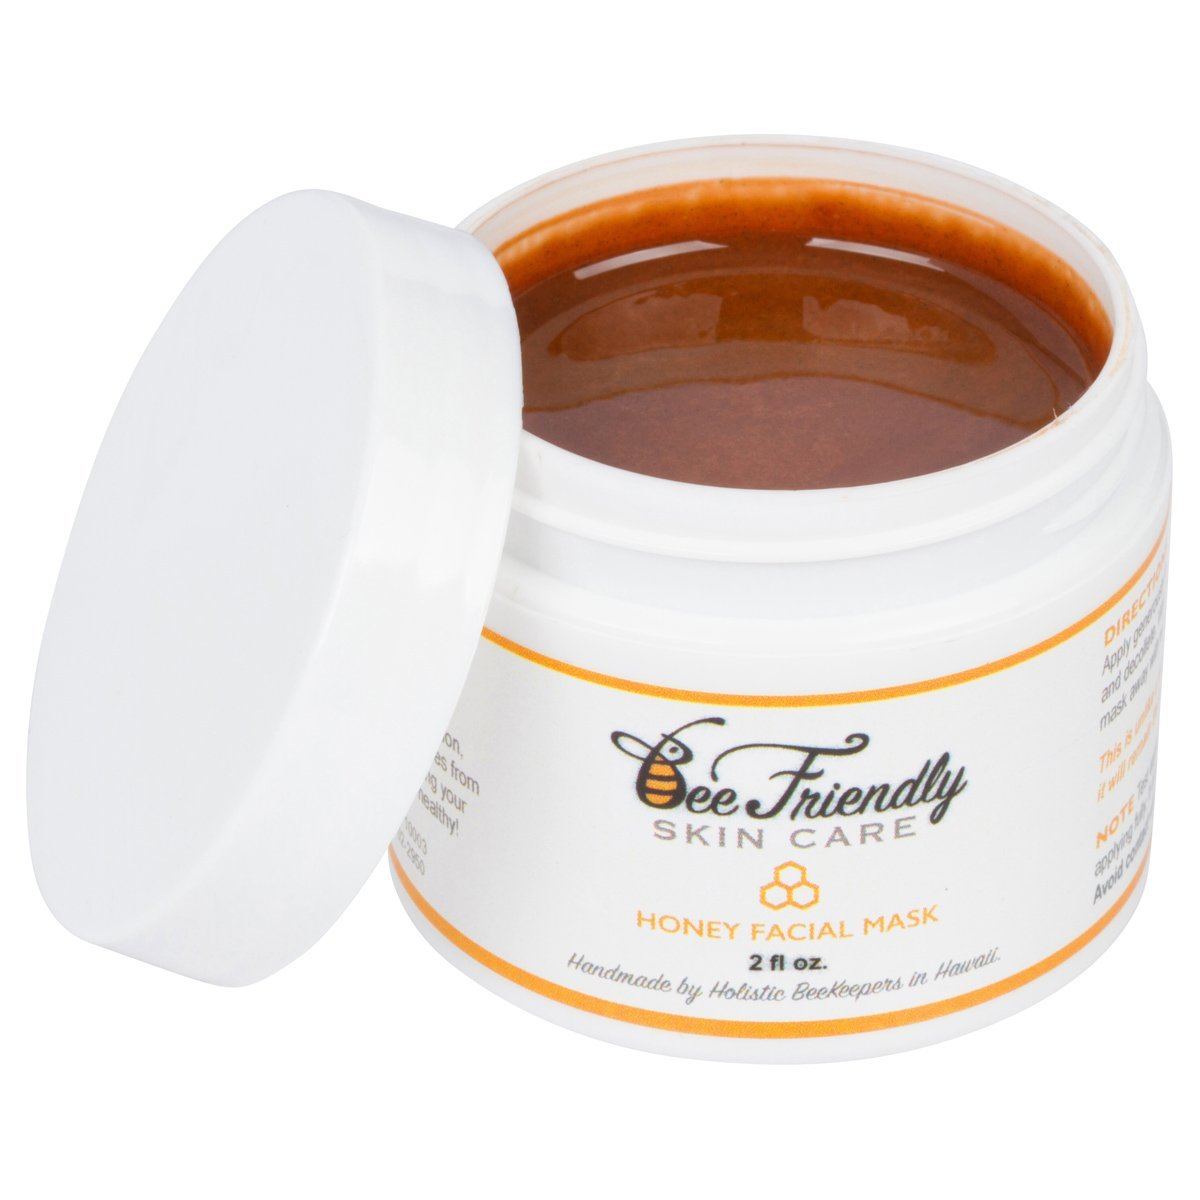 Raw Honey Facial Mask,100% All Natural w/ French Pink Clay Revitalizing Face Mask by BeeFriendly, Leaves Skin Soft, Smooth, Youthful, Pulls Impurities, Enhances Collagen Production, Clears Acne